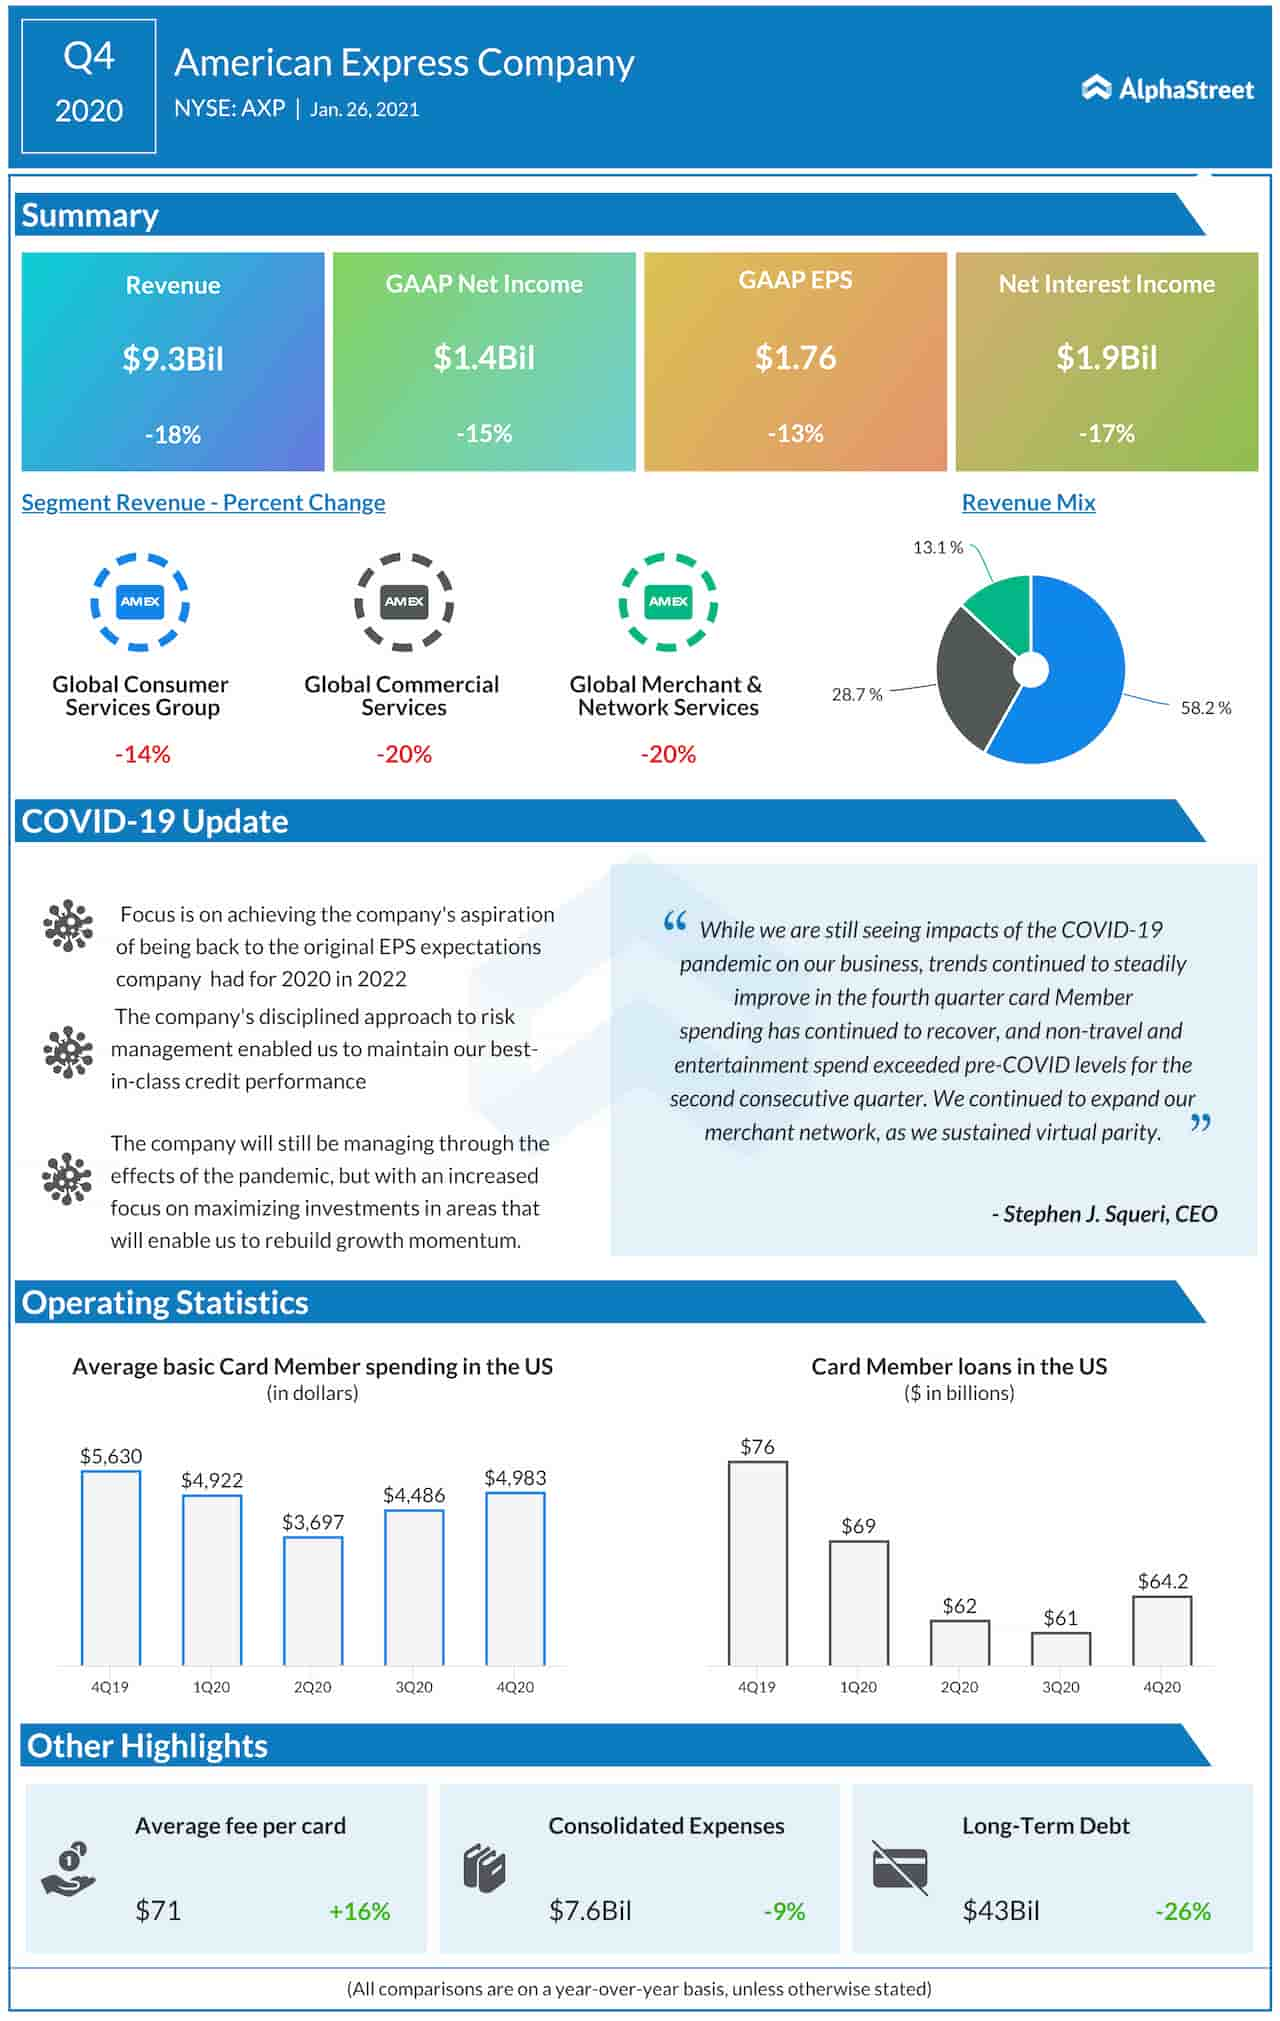 American Express Q4 2020 earnings infographic